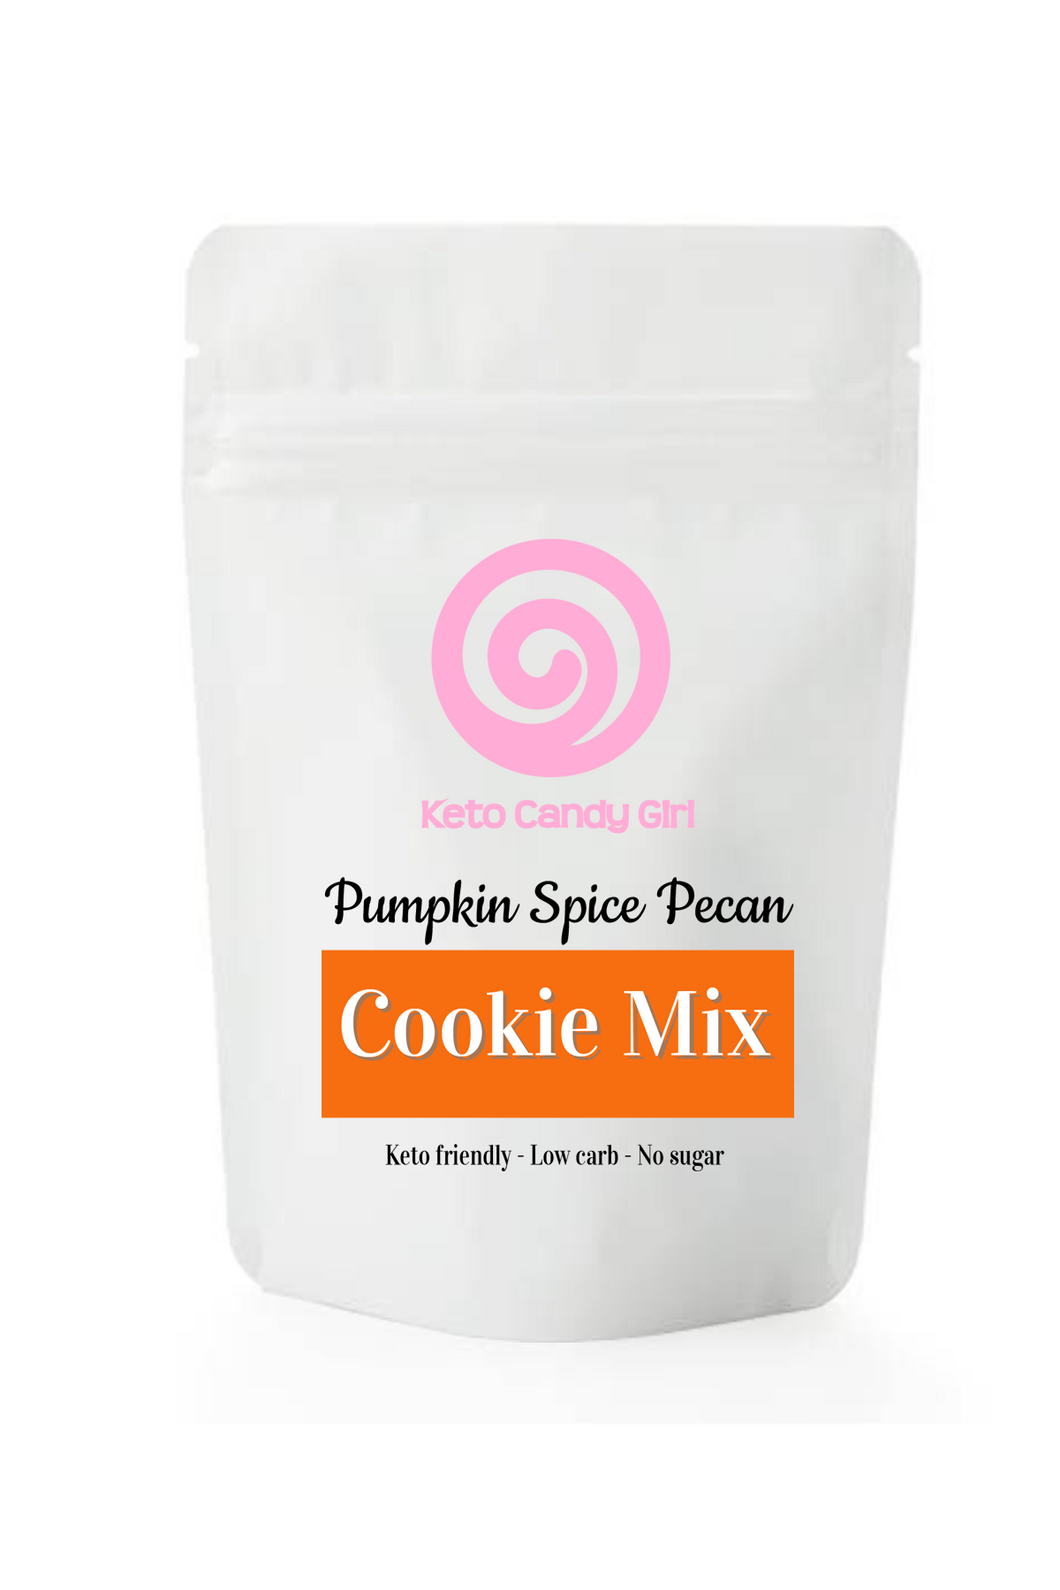 LIMITED EDITION: Pumpkin Spice Pecan Mix